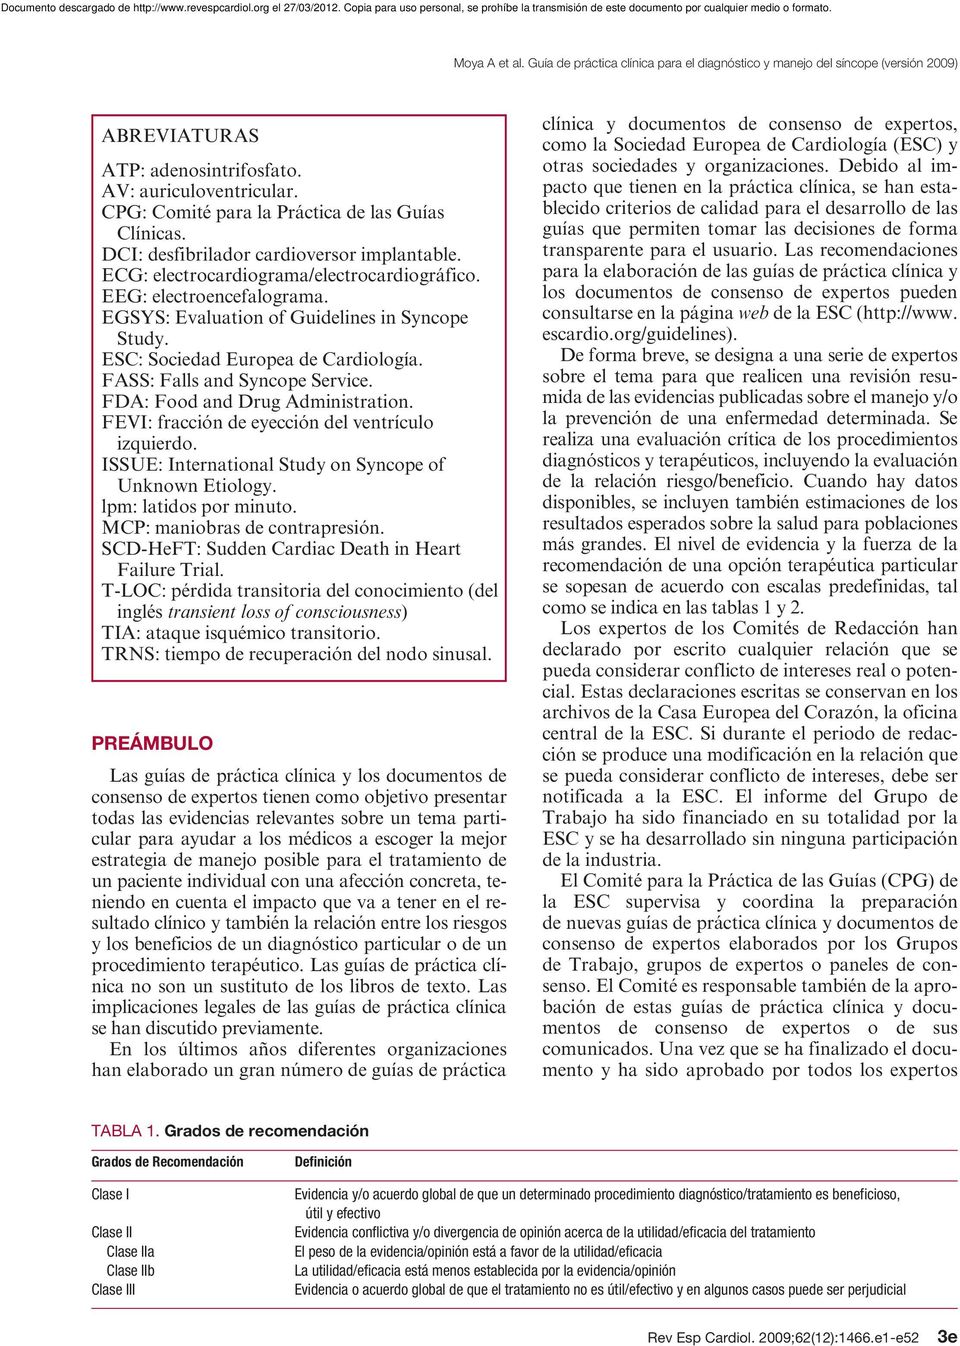 FDA: Food and Drug Administration. FEVI: fracción de eyección del ventrículo izquierdo. ISSUE: International Study on Syncope of Unknown Etiology. lpm: latidos por minuto.